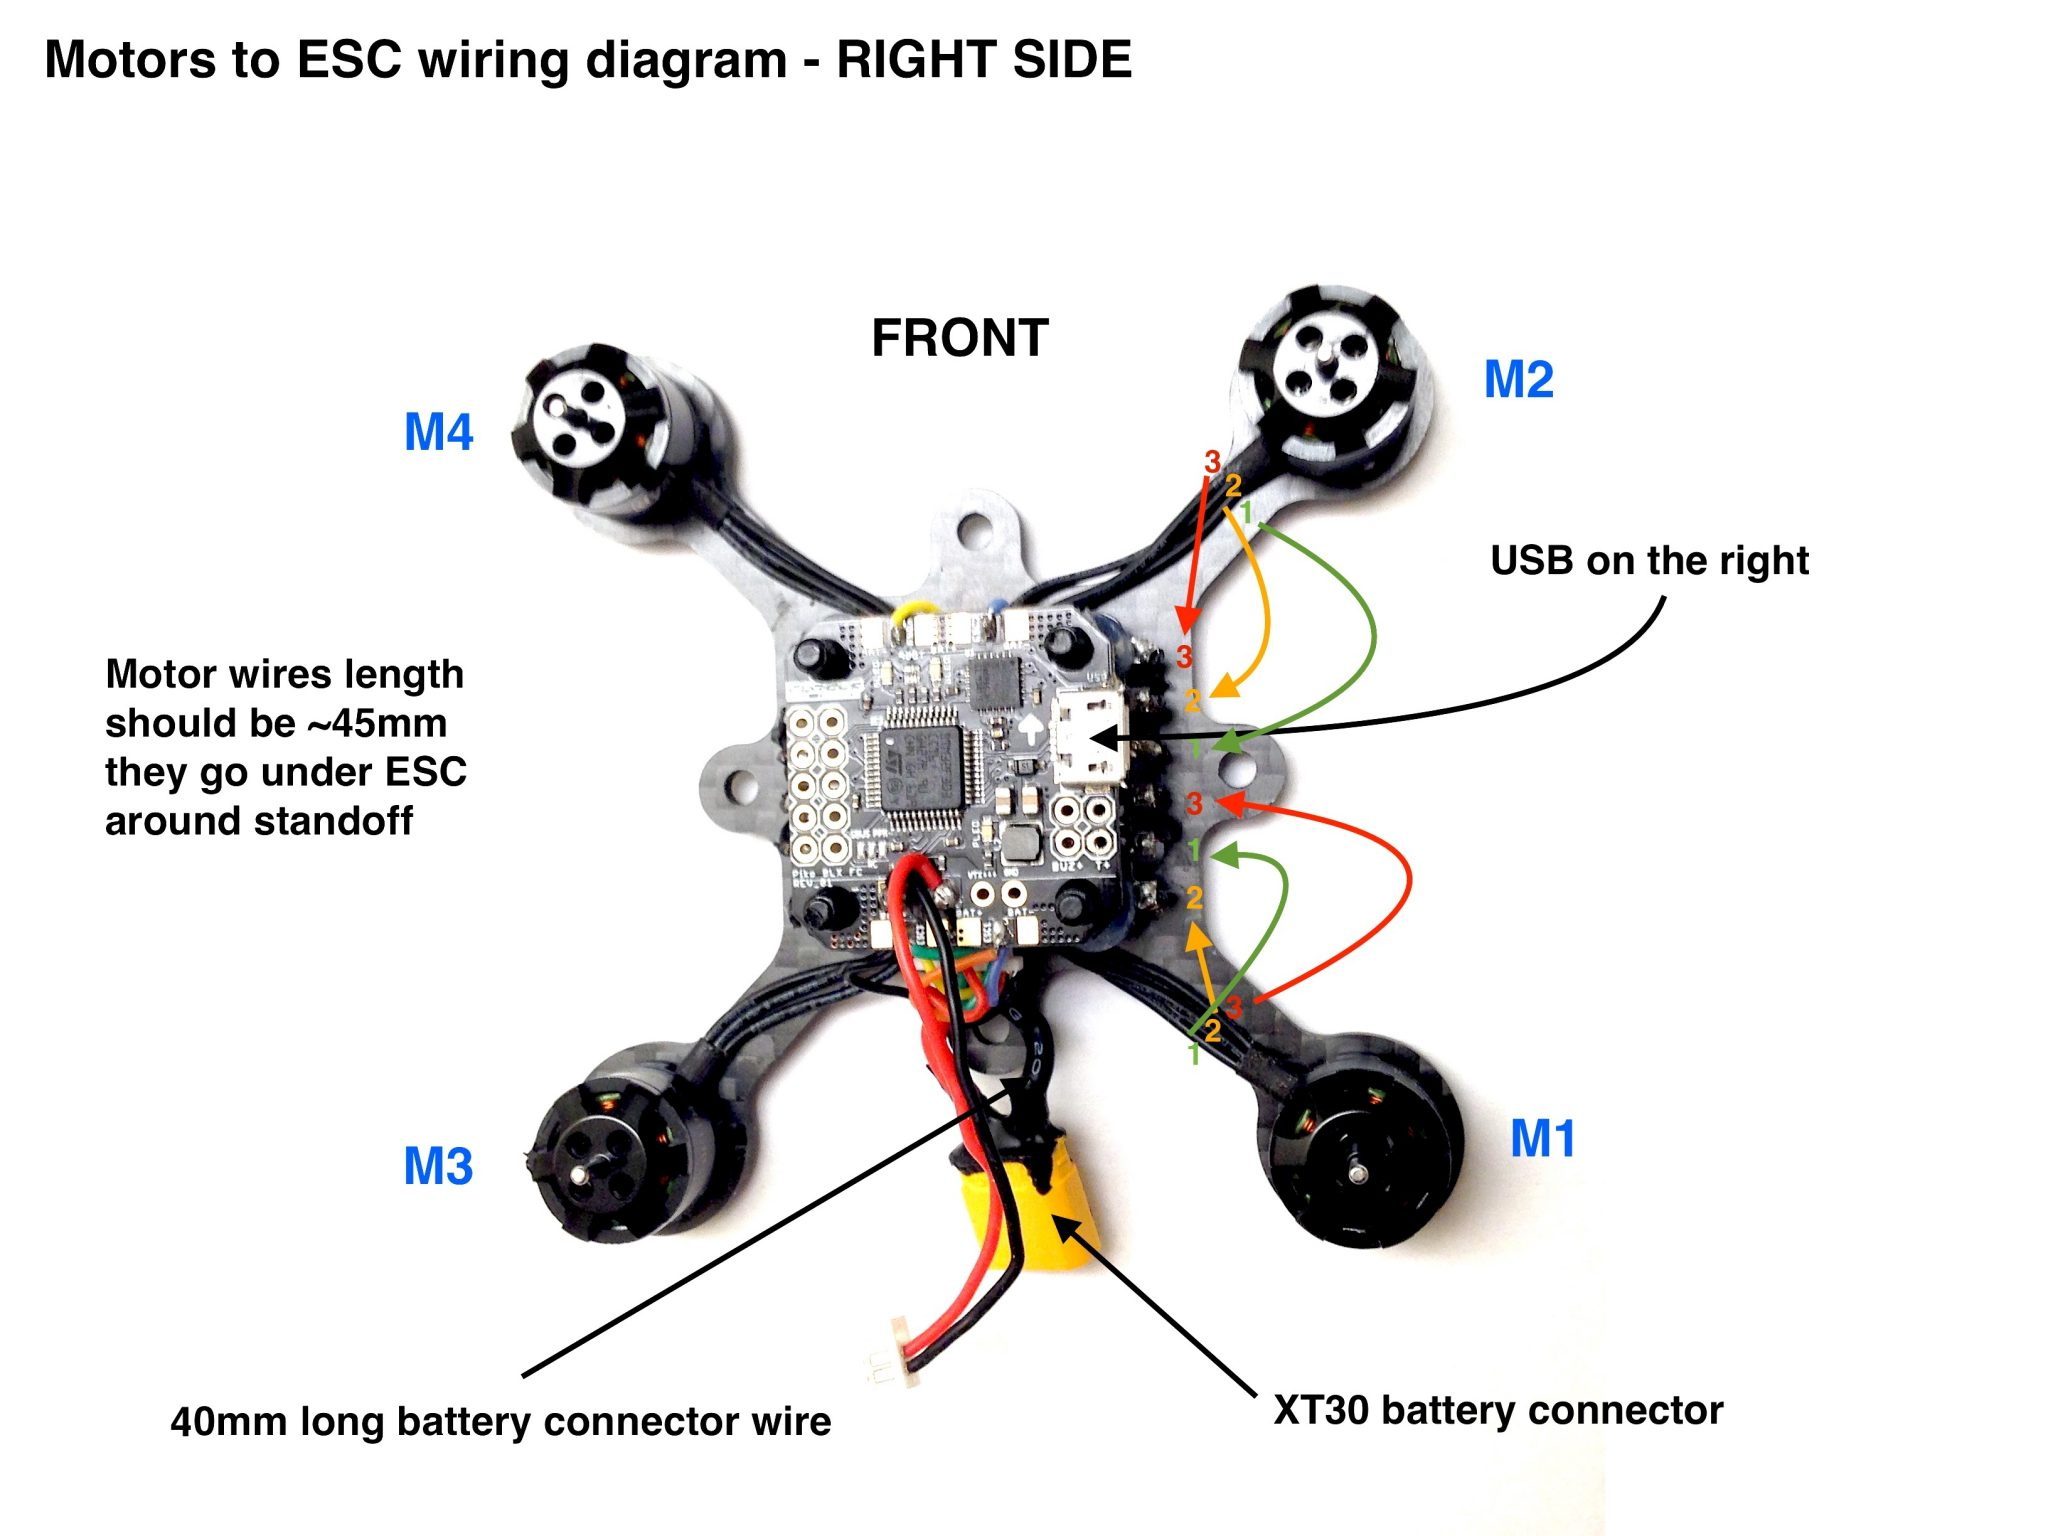 flexrc pico core motors wiring diagram flex rc. Black Bedroom Furniture Sets. Home Design Ideas